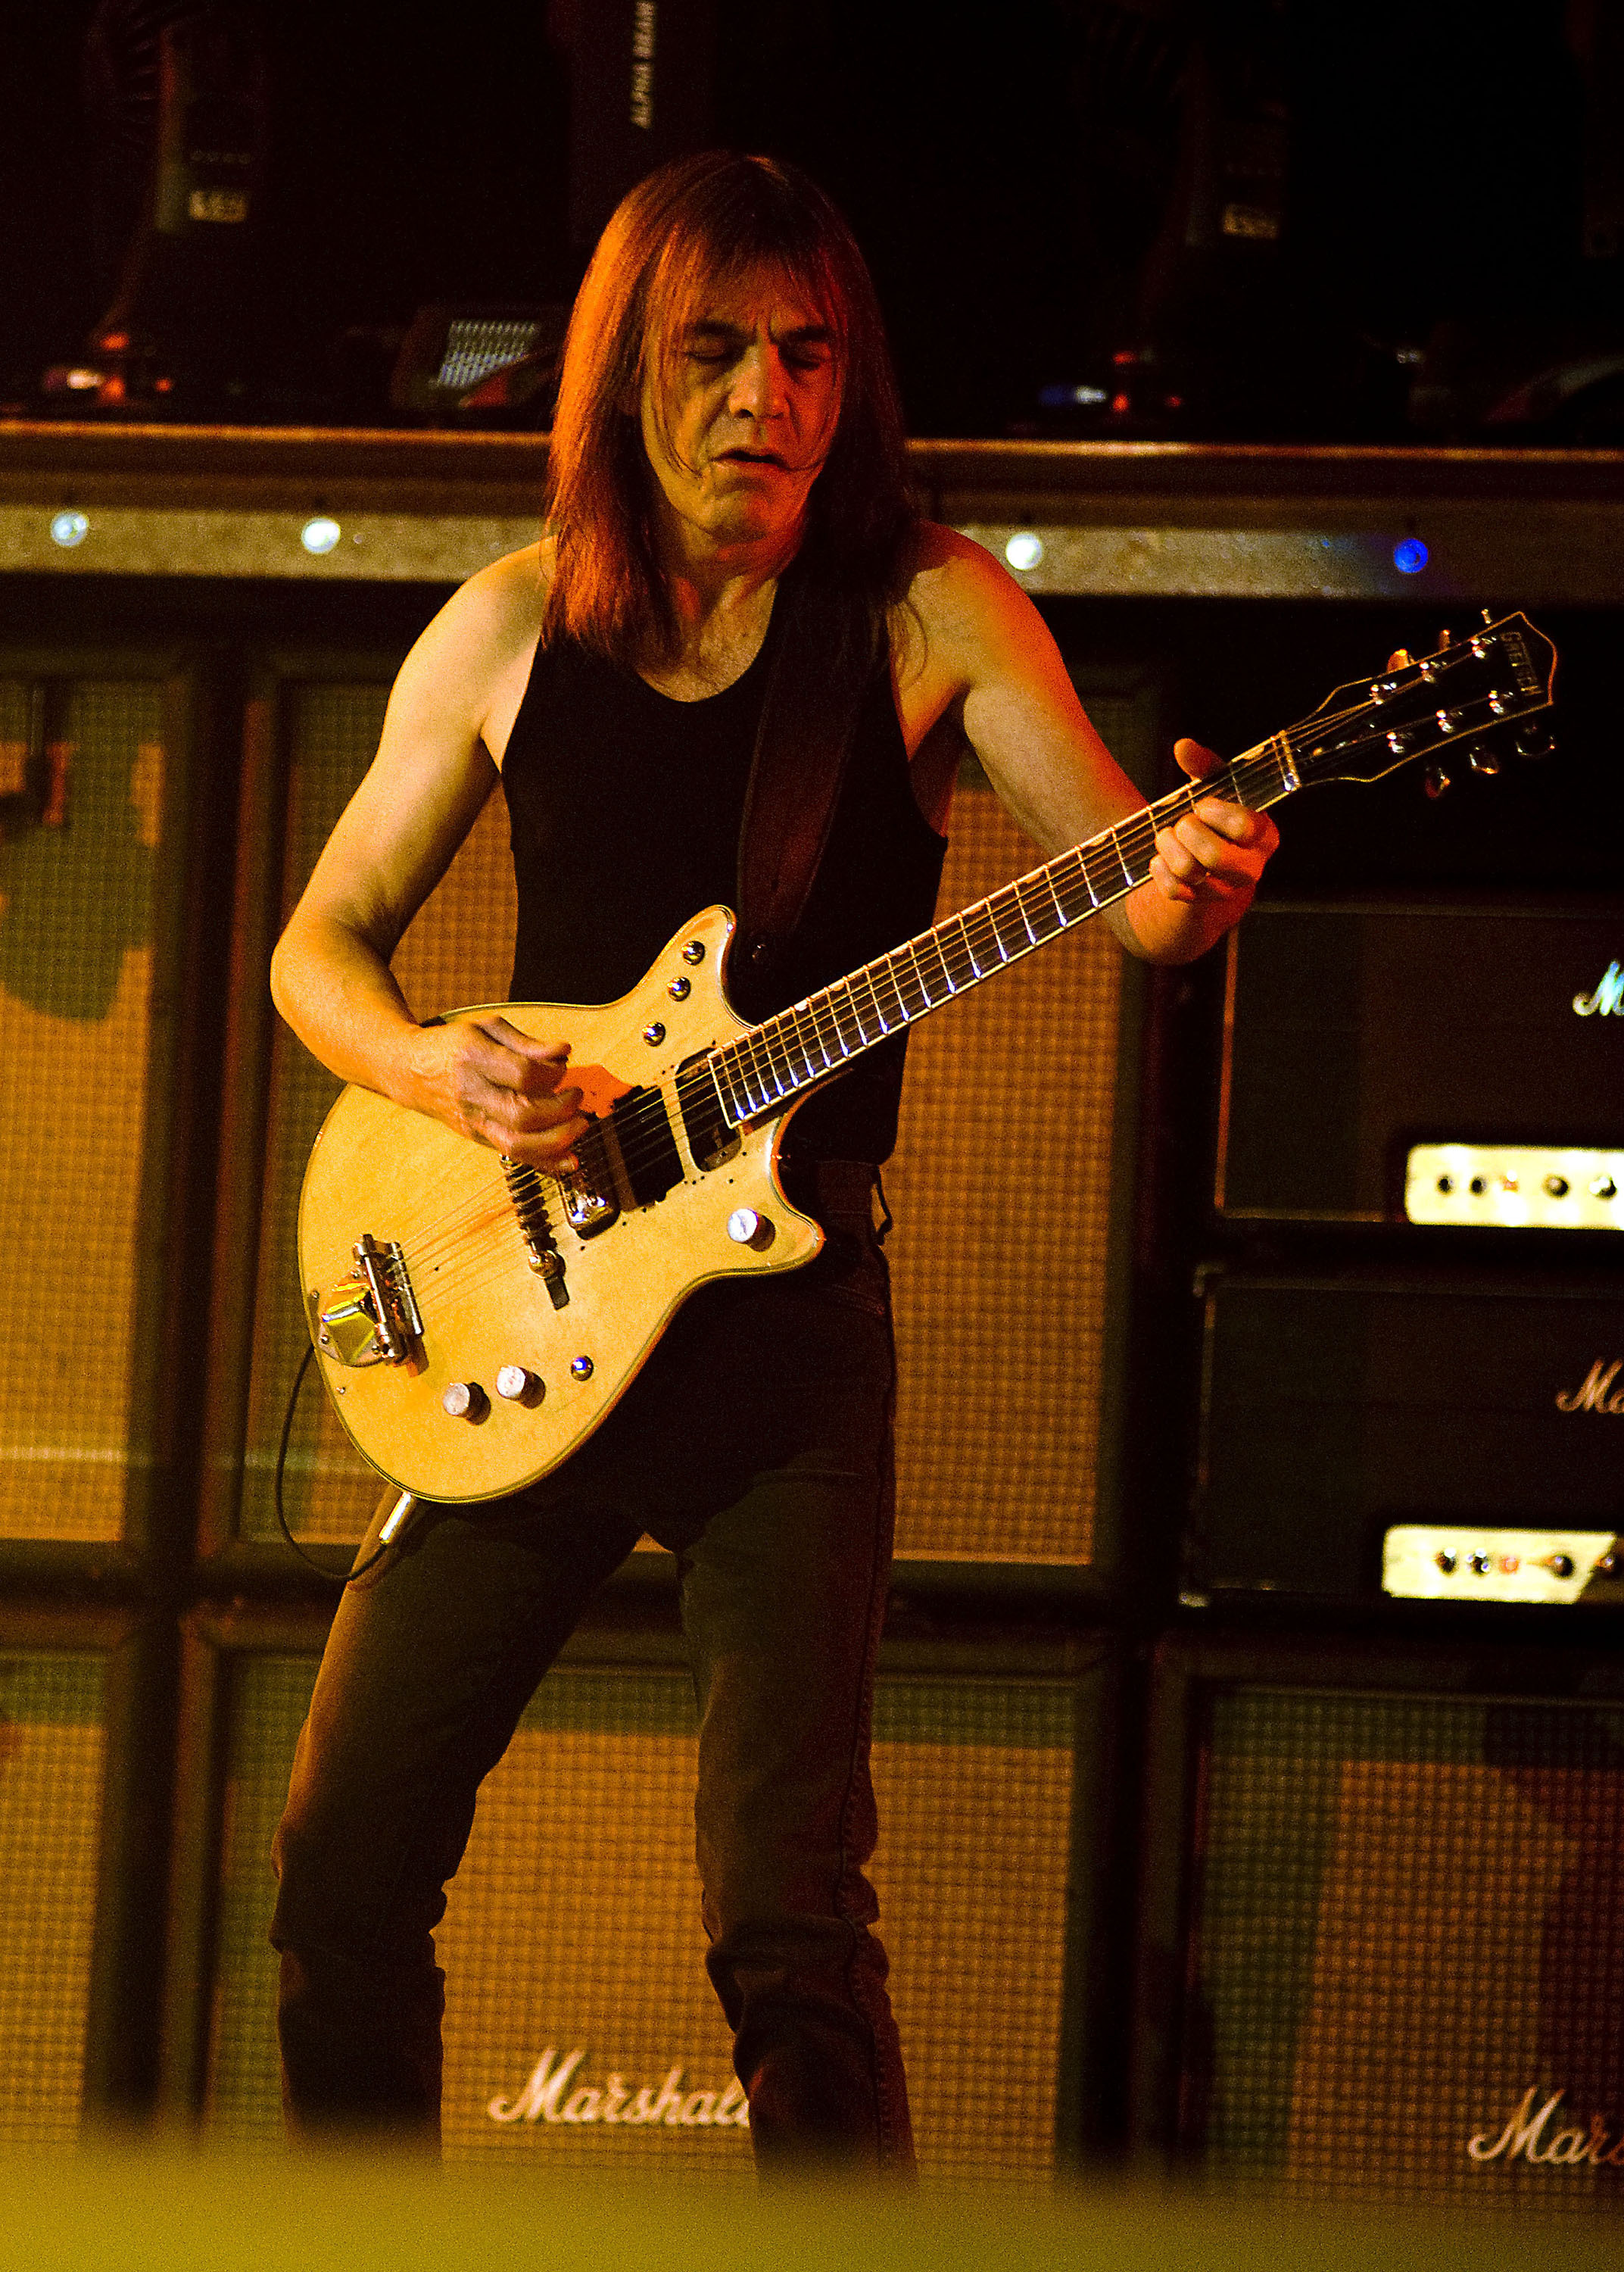 Malcolm Young of AC/DC performing live during their Black Ice World Tour Chicago, Illinois - 30.10.08  Featuring: Malcolm Young of AC/DC Where: IL, United States When: 30 Oct 2008 Credit: WENN